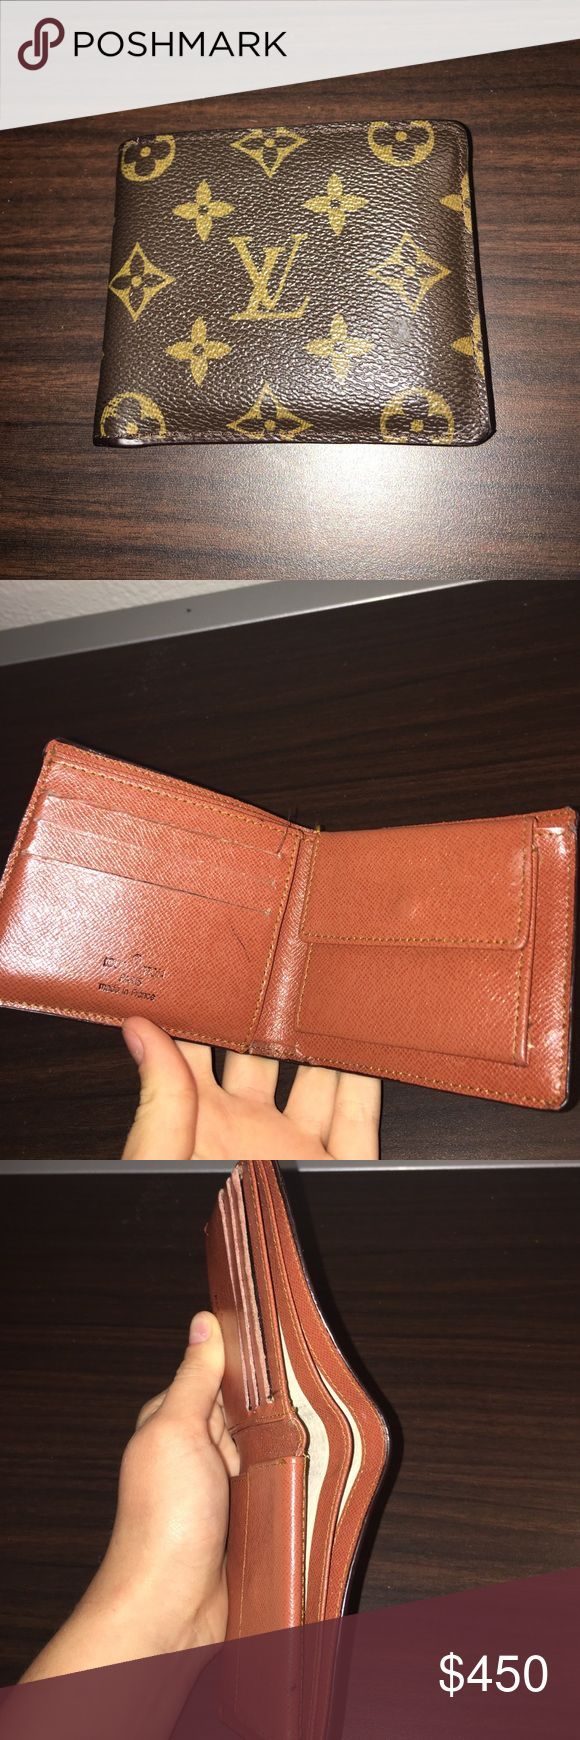 Authentic Louis Vuitton men's wallet Authentic, bought in Paris, perfect condition Louis Vuitton Bags Wallets